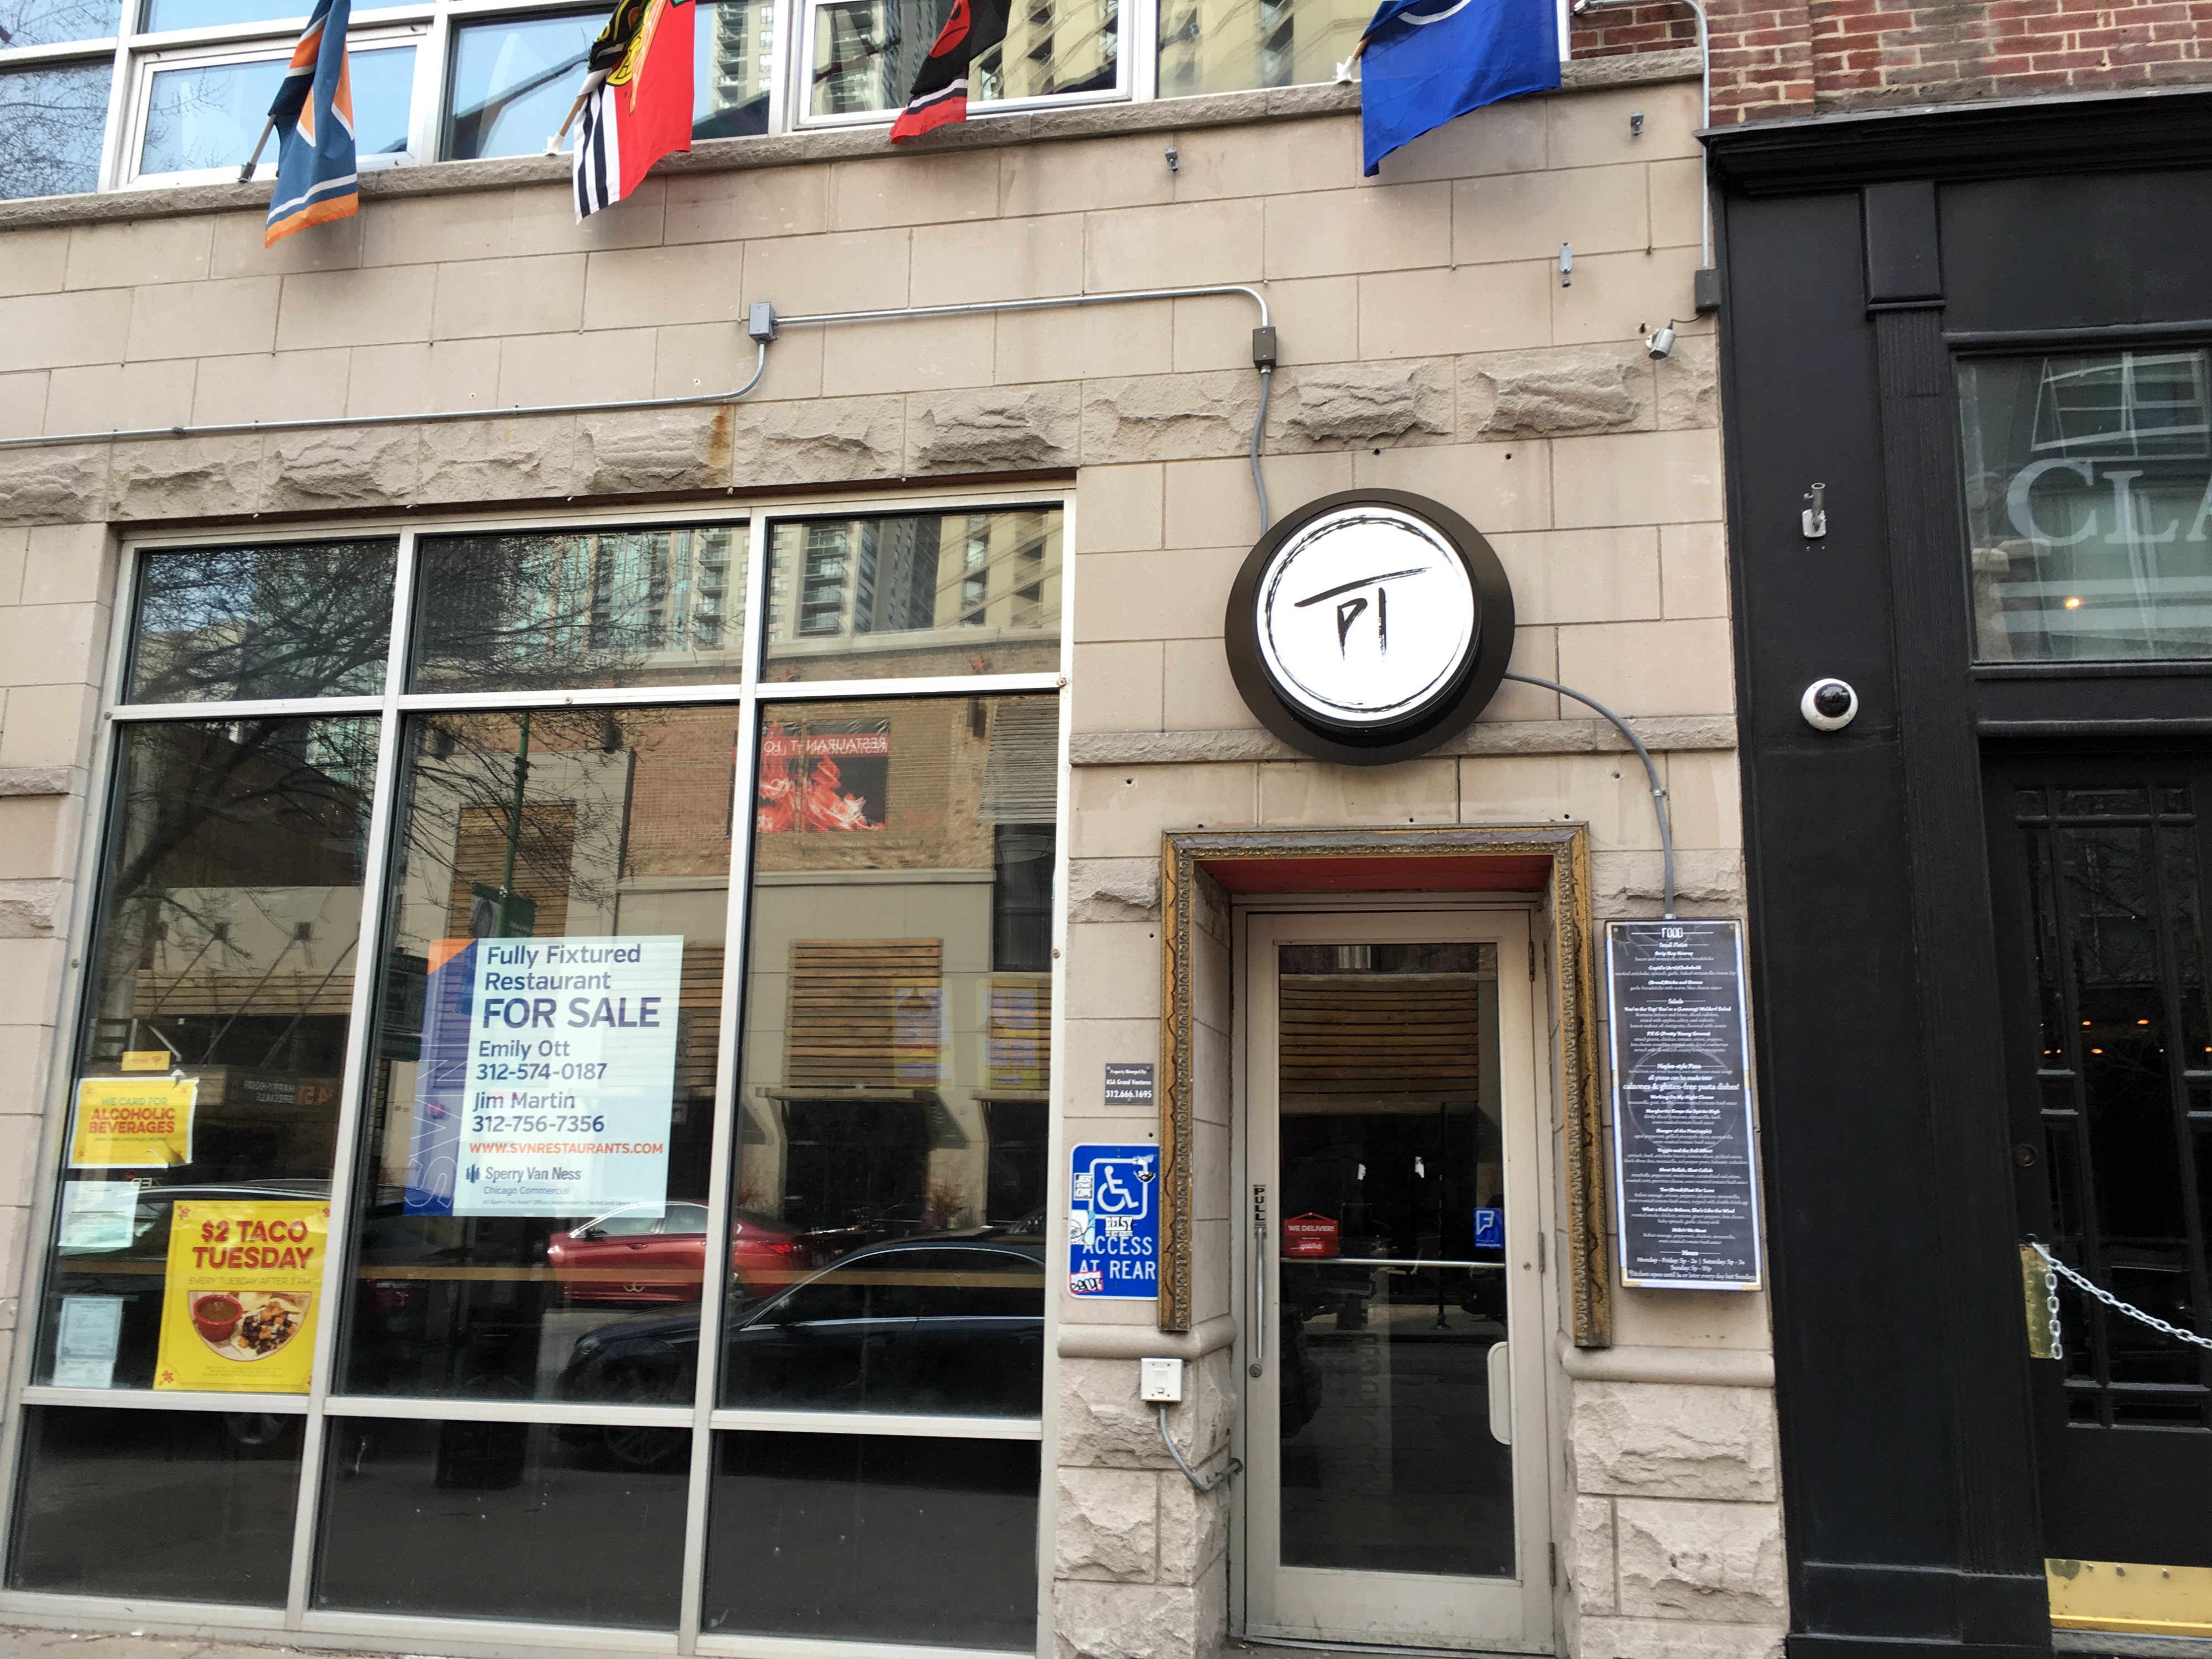 Both the Pi Gallery Bar and Mercadito Counter spaces are on the market